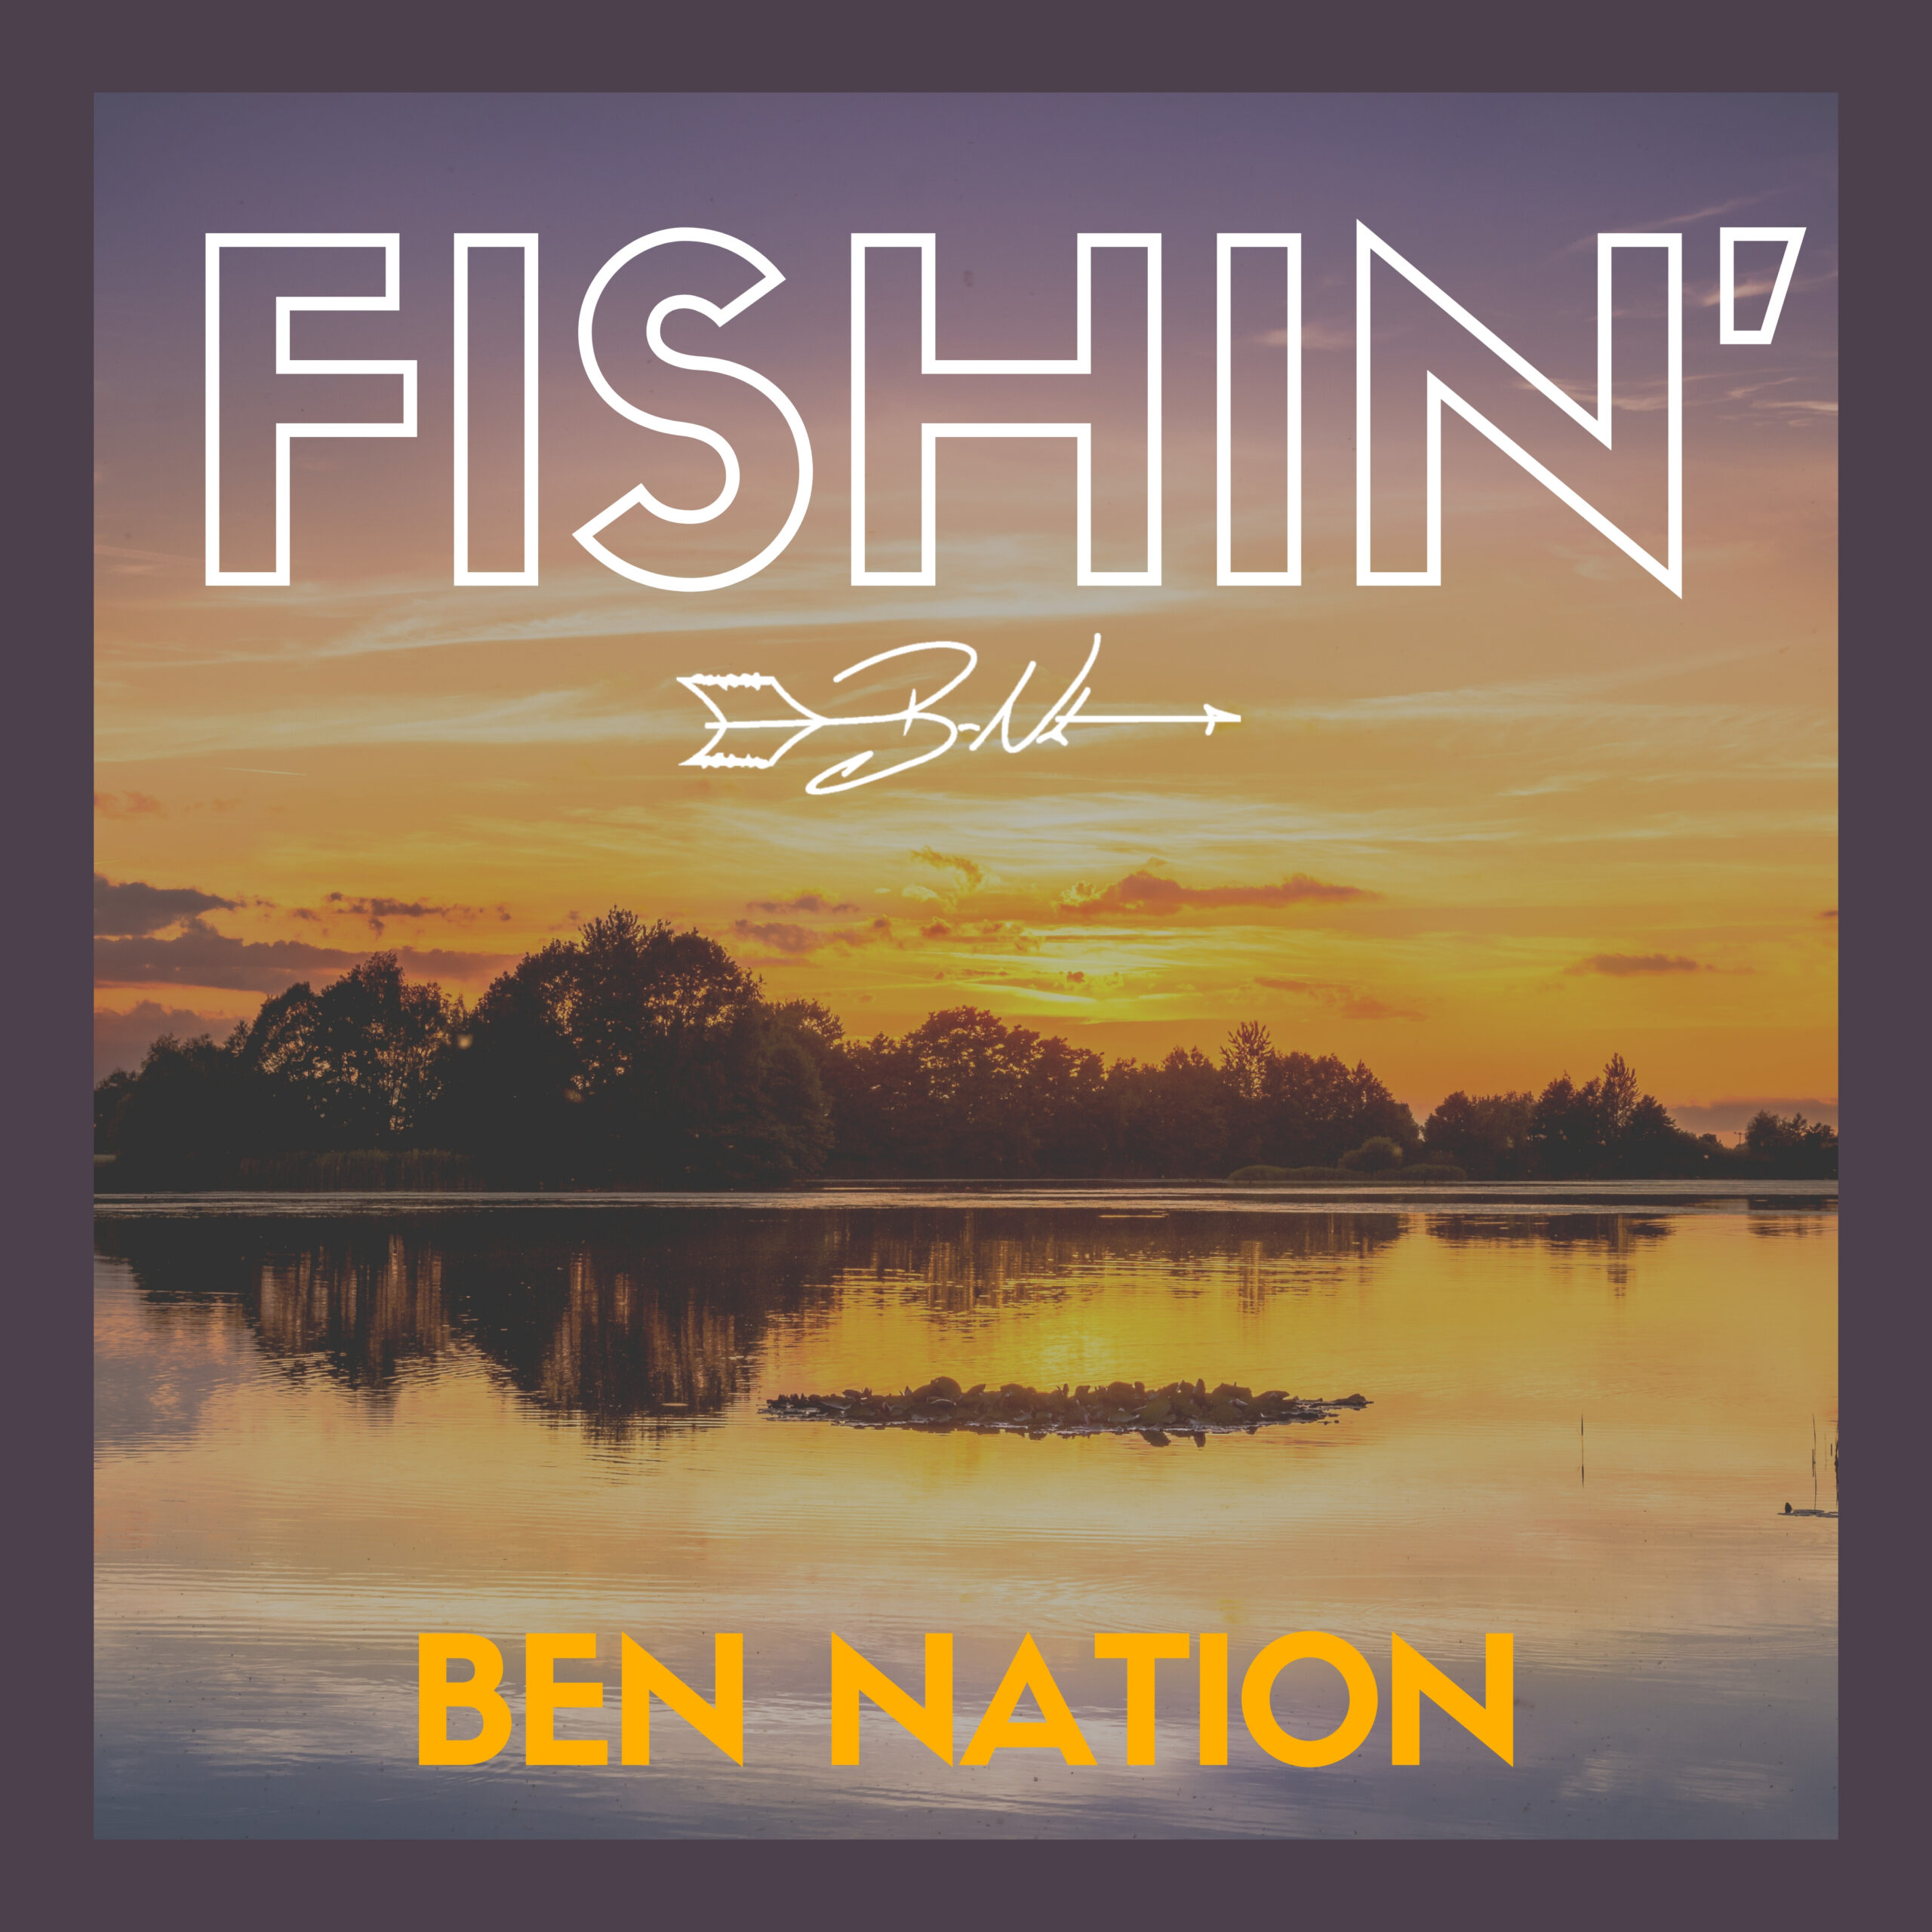 Fishin' - Ben Nation